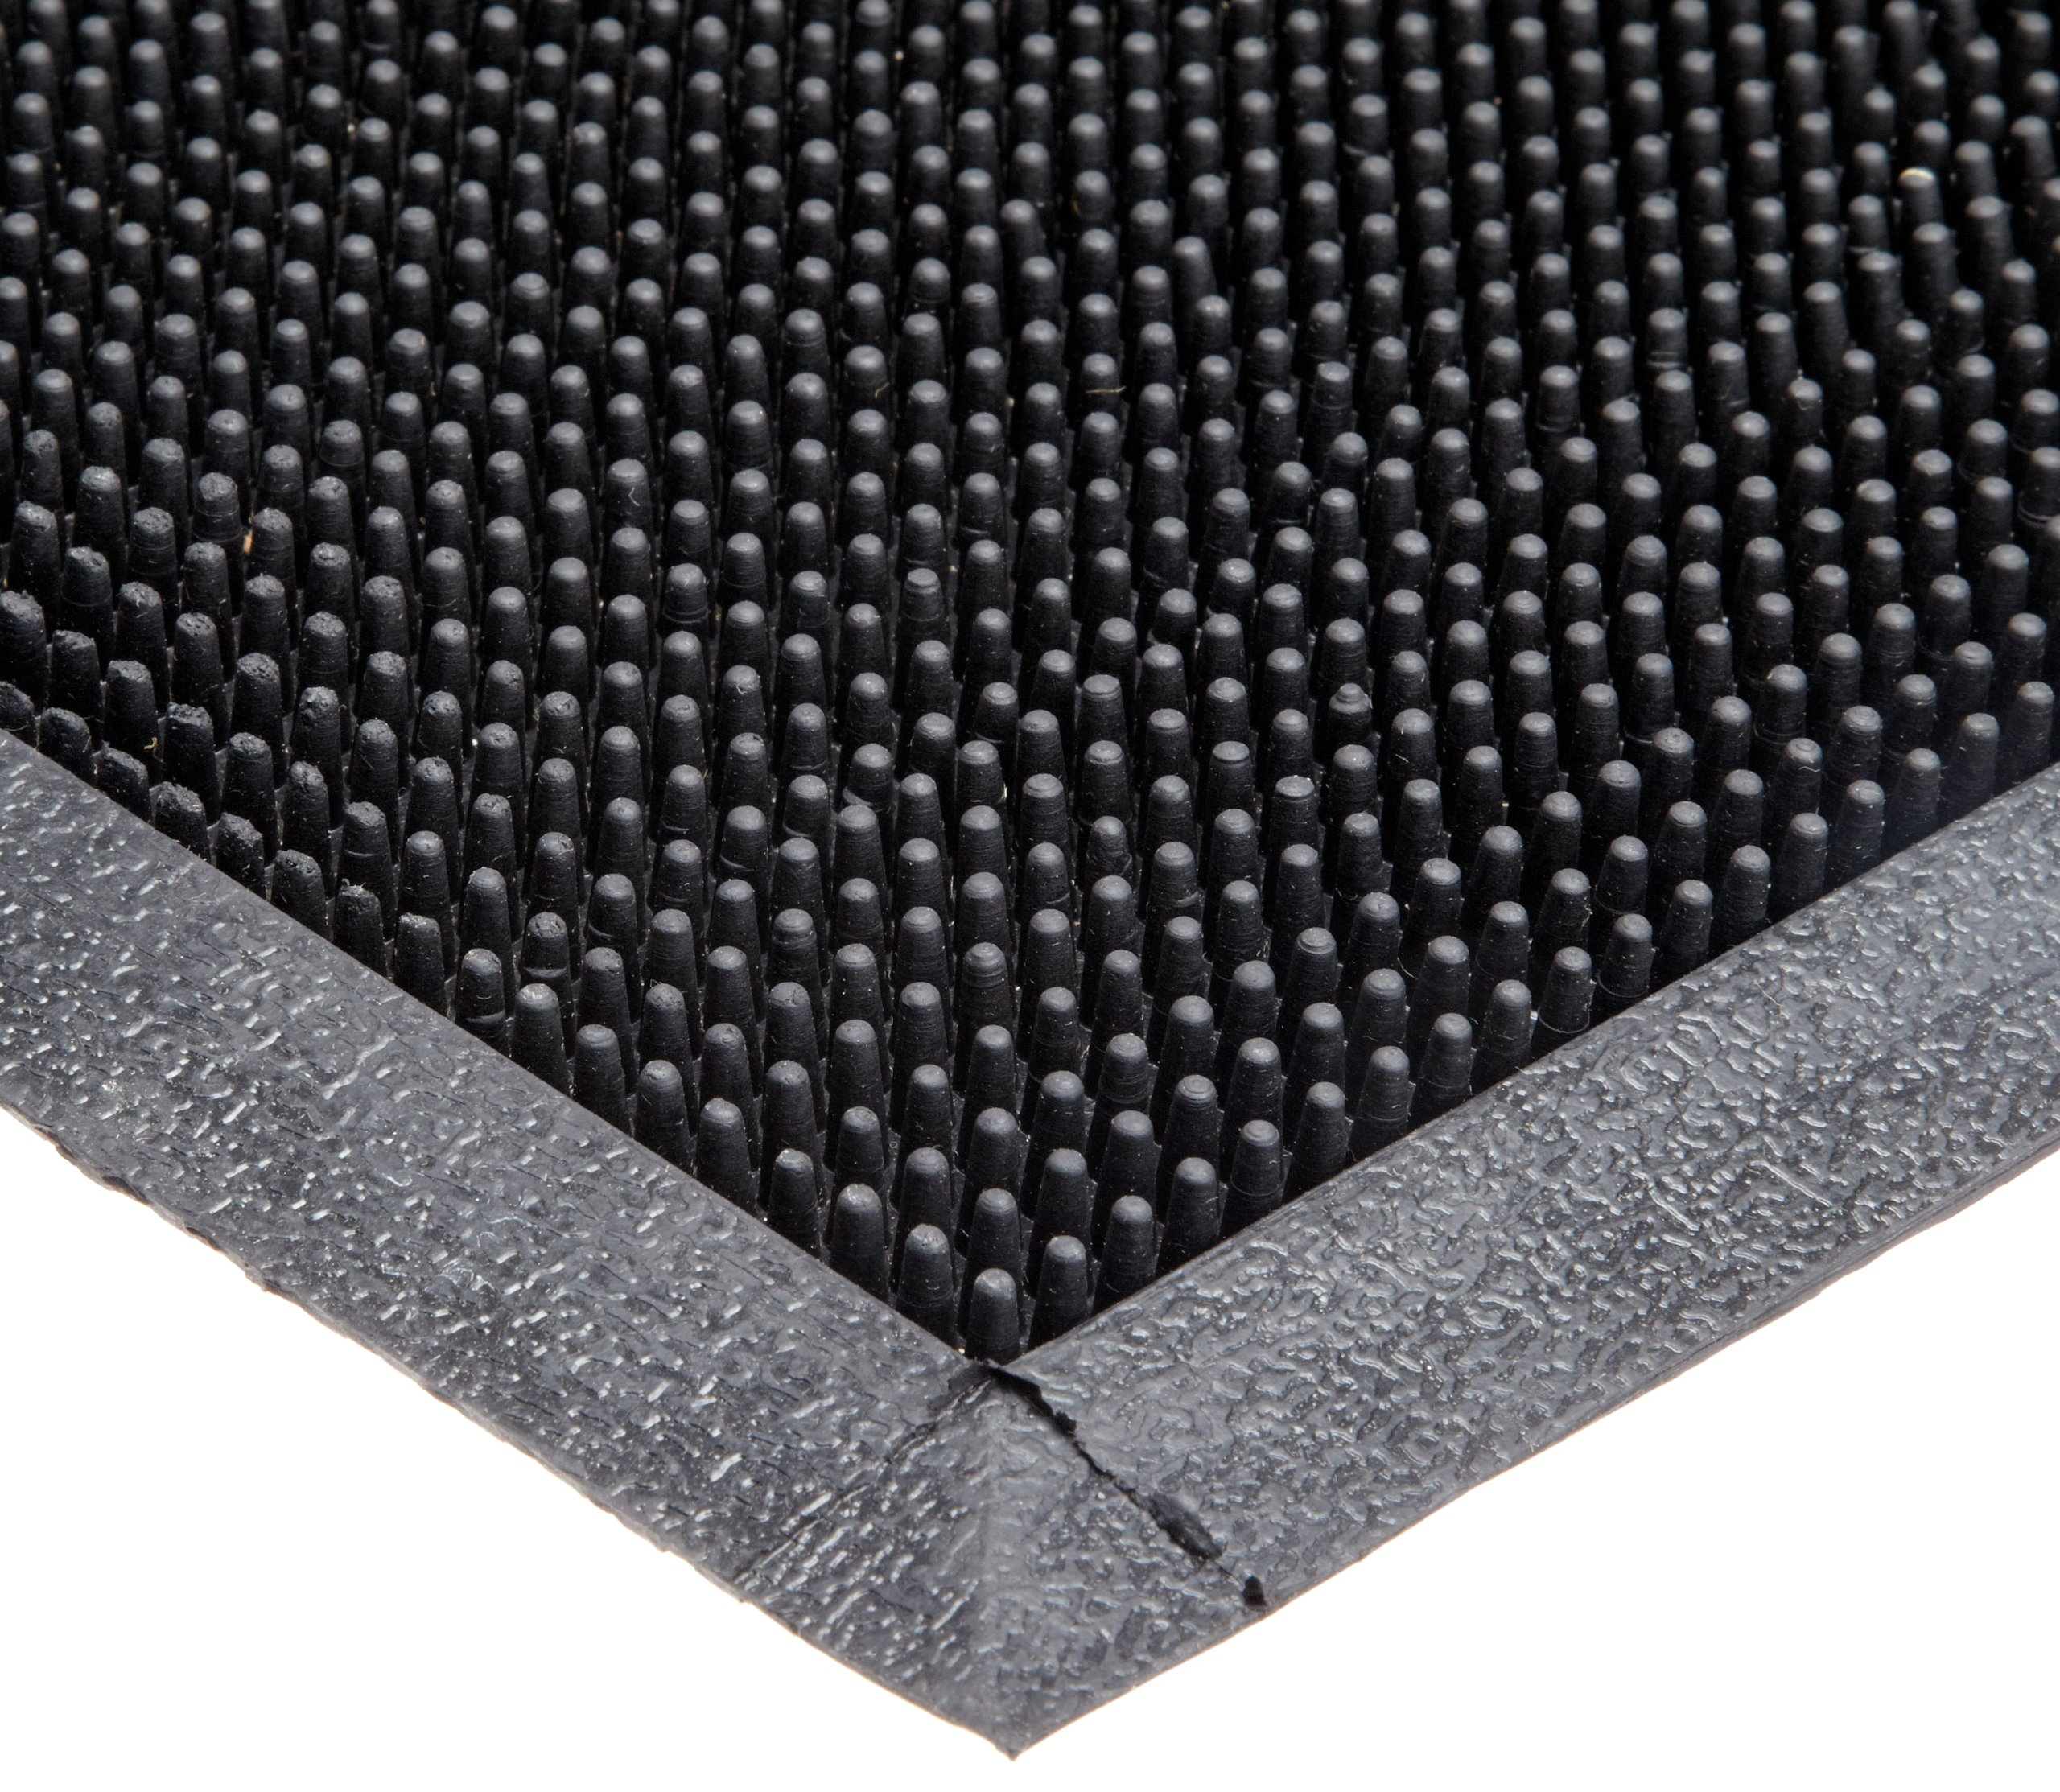 Durable Corporation 396S2432BK Heavy Duty Rubber Fingertip Entrance Mat, for Outdoor Areas, 24'' Width x 32'' Length x 5/8'' Thickness, Black